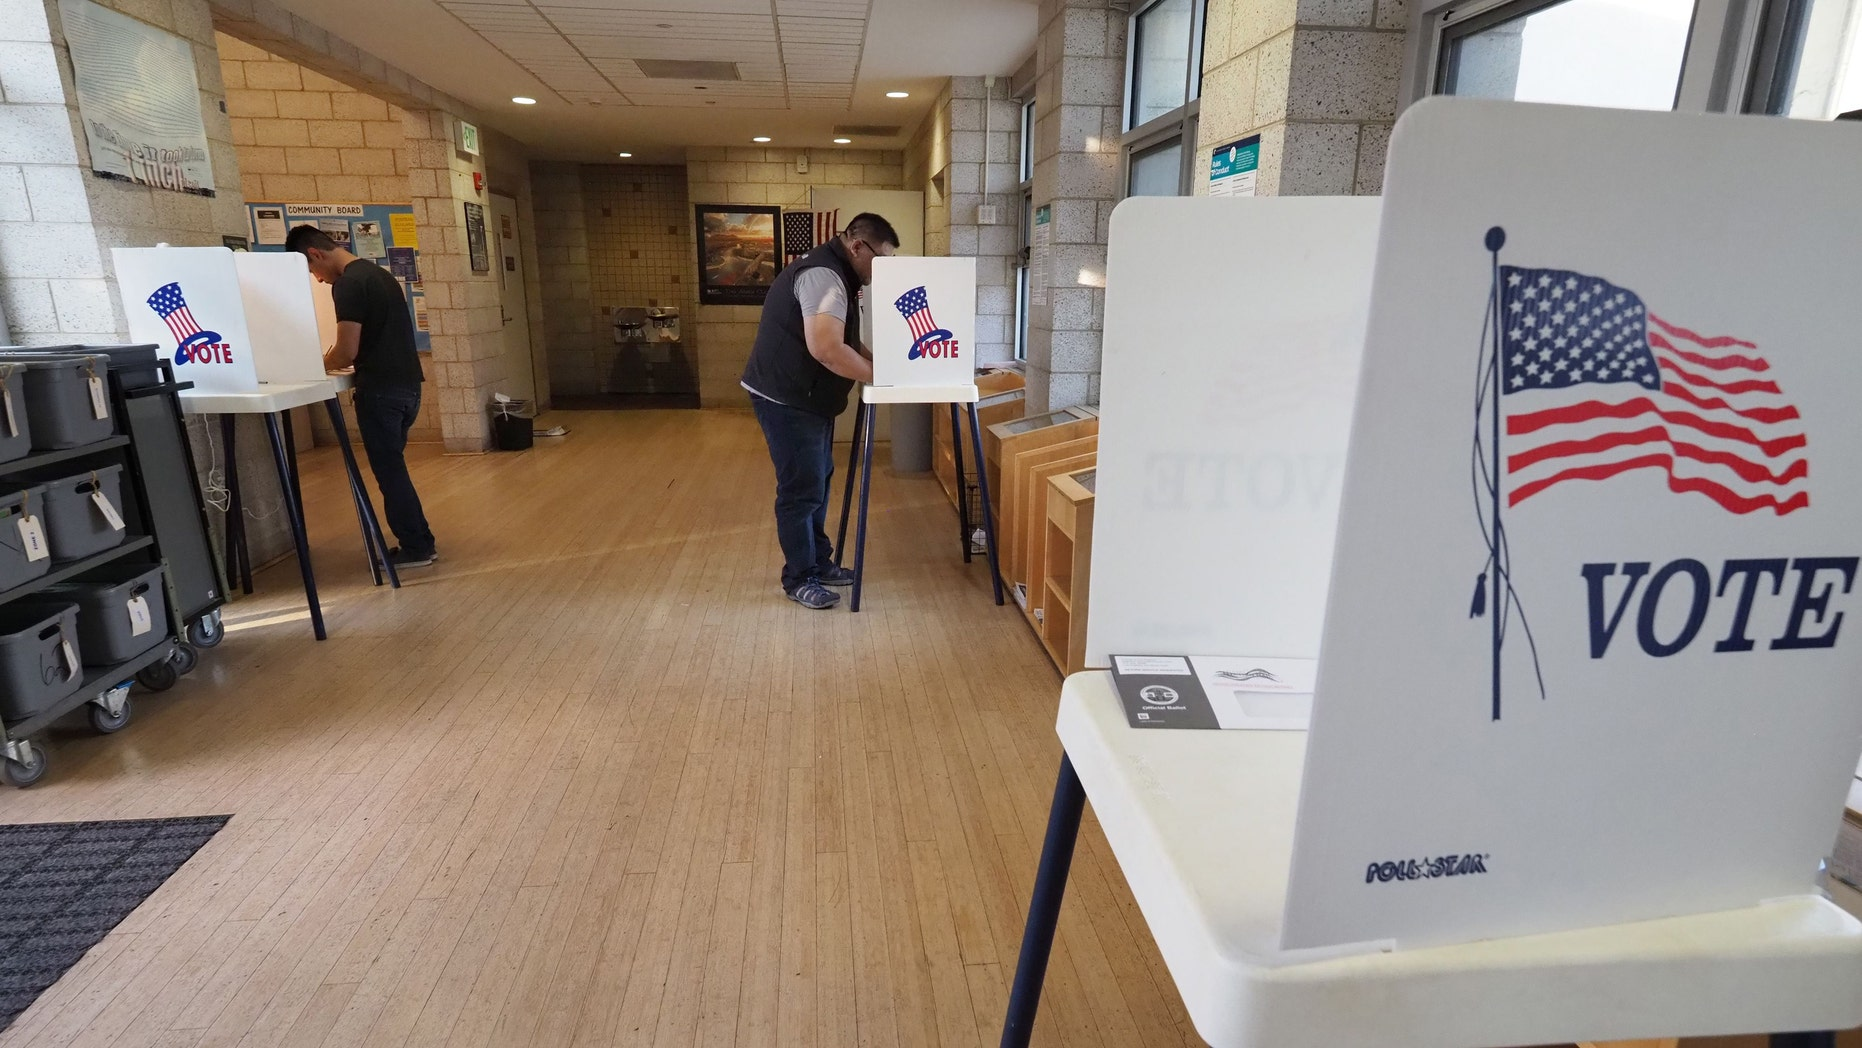 File photo - People complete their ballot during early voting for the mid-term elections at a public library in the Lake View Terrace neighborhood of Los Angeles, California on Nov. 4, 2018.